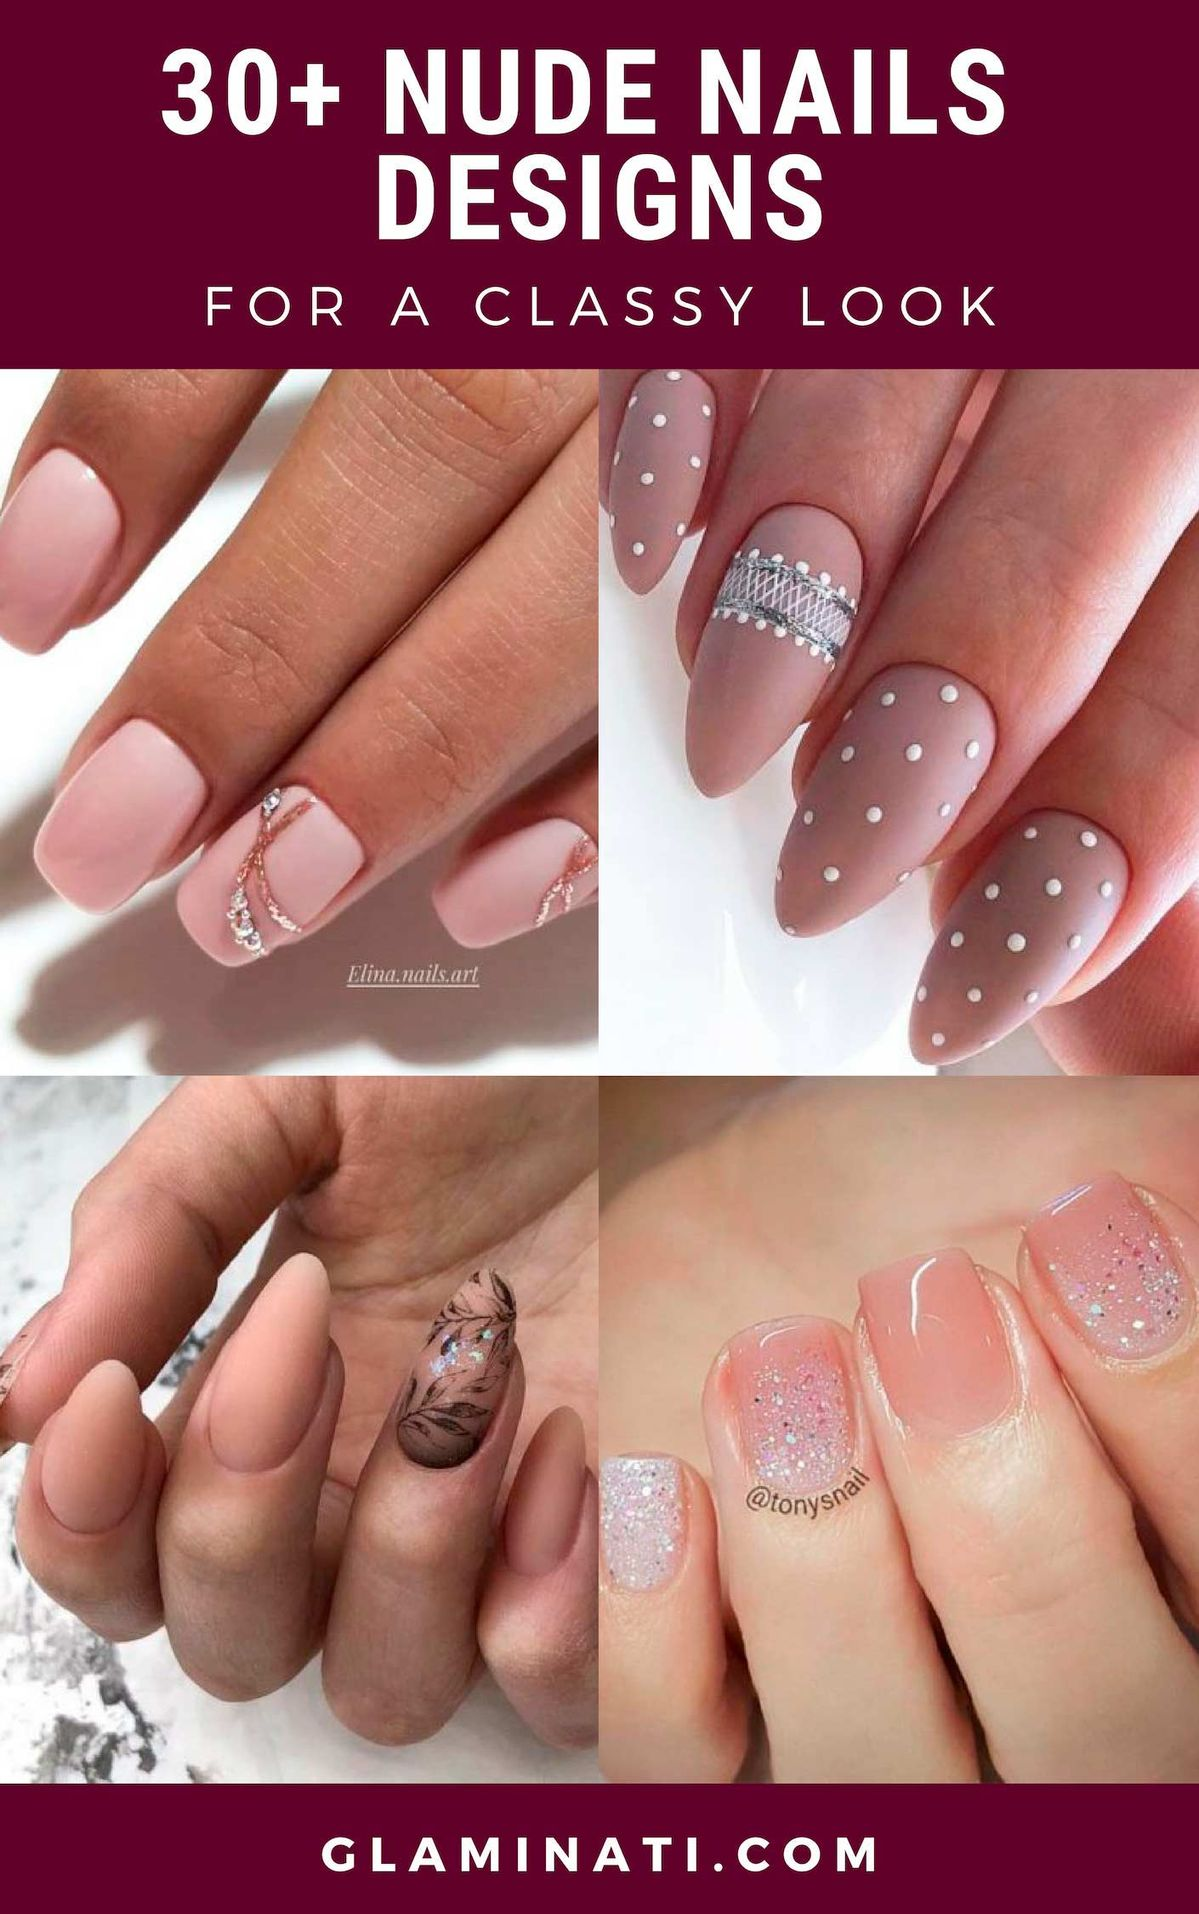 30+ Nude Nails Designs For A Classy Look ★ Simple and natural design ideas to treat your nails with! #lifestyle #glaminati #nudenail